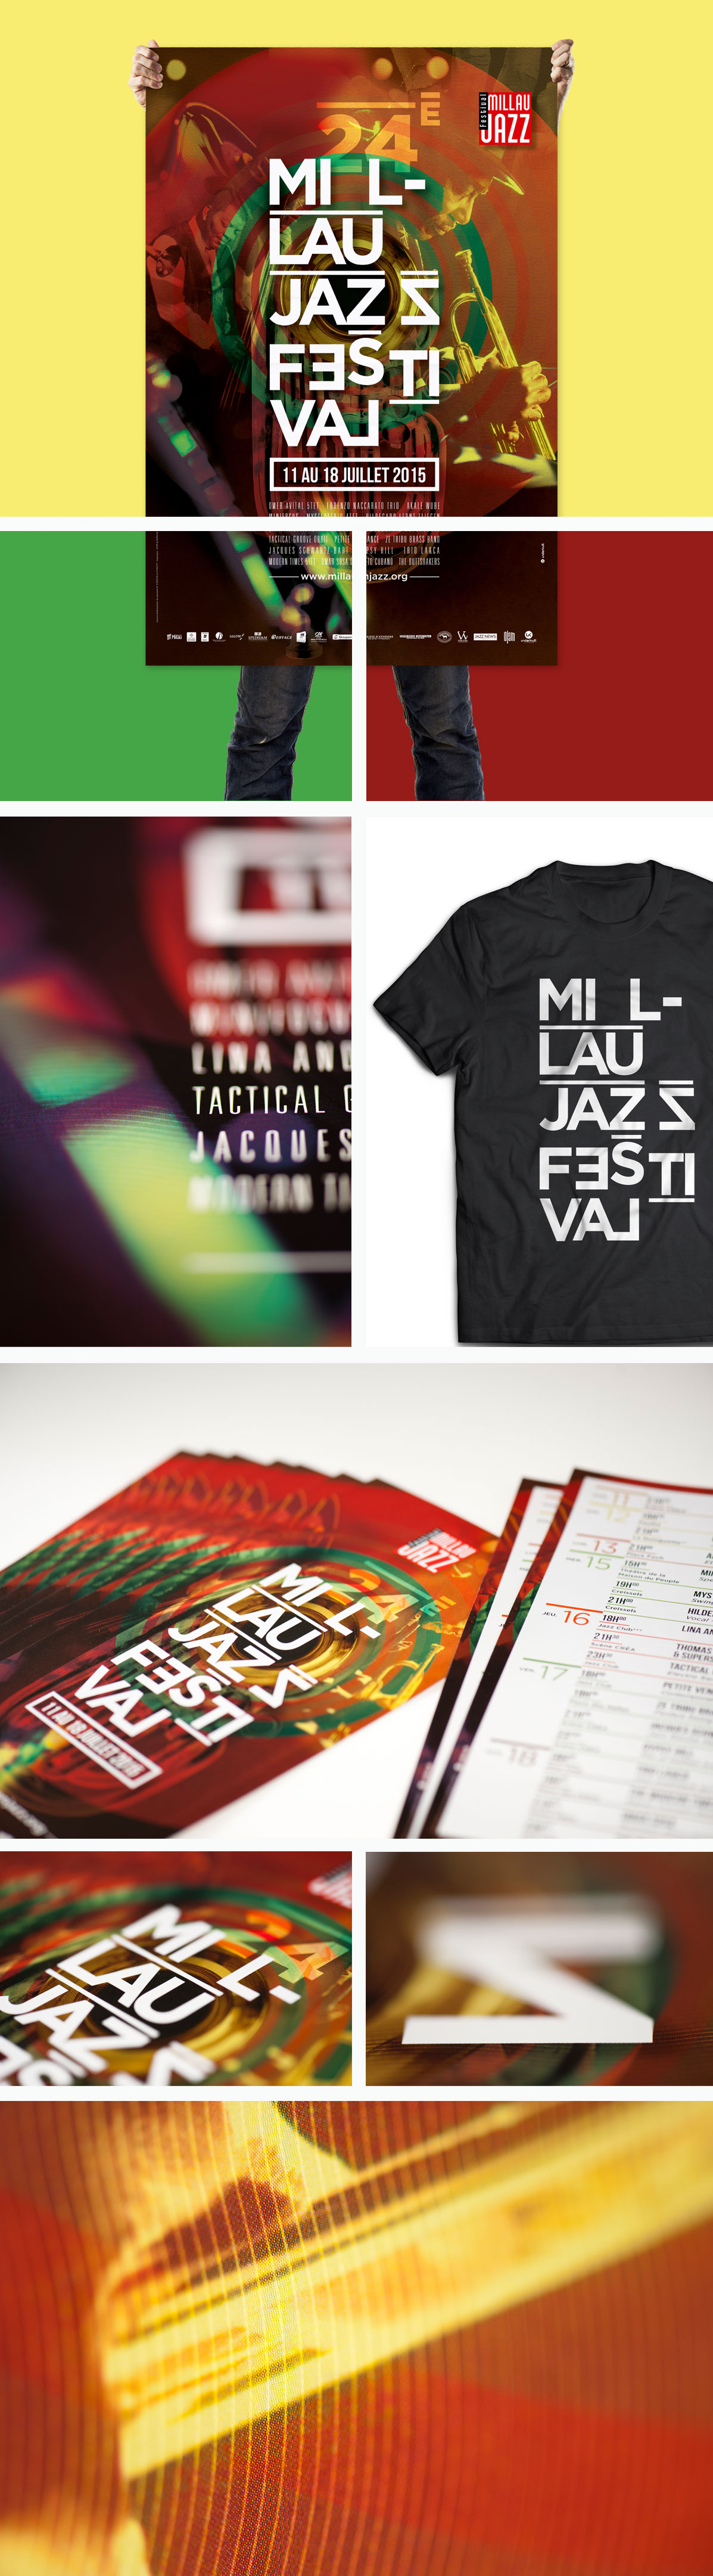 Conception graphique Millau en Jazz